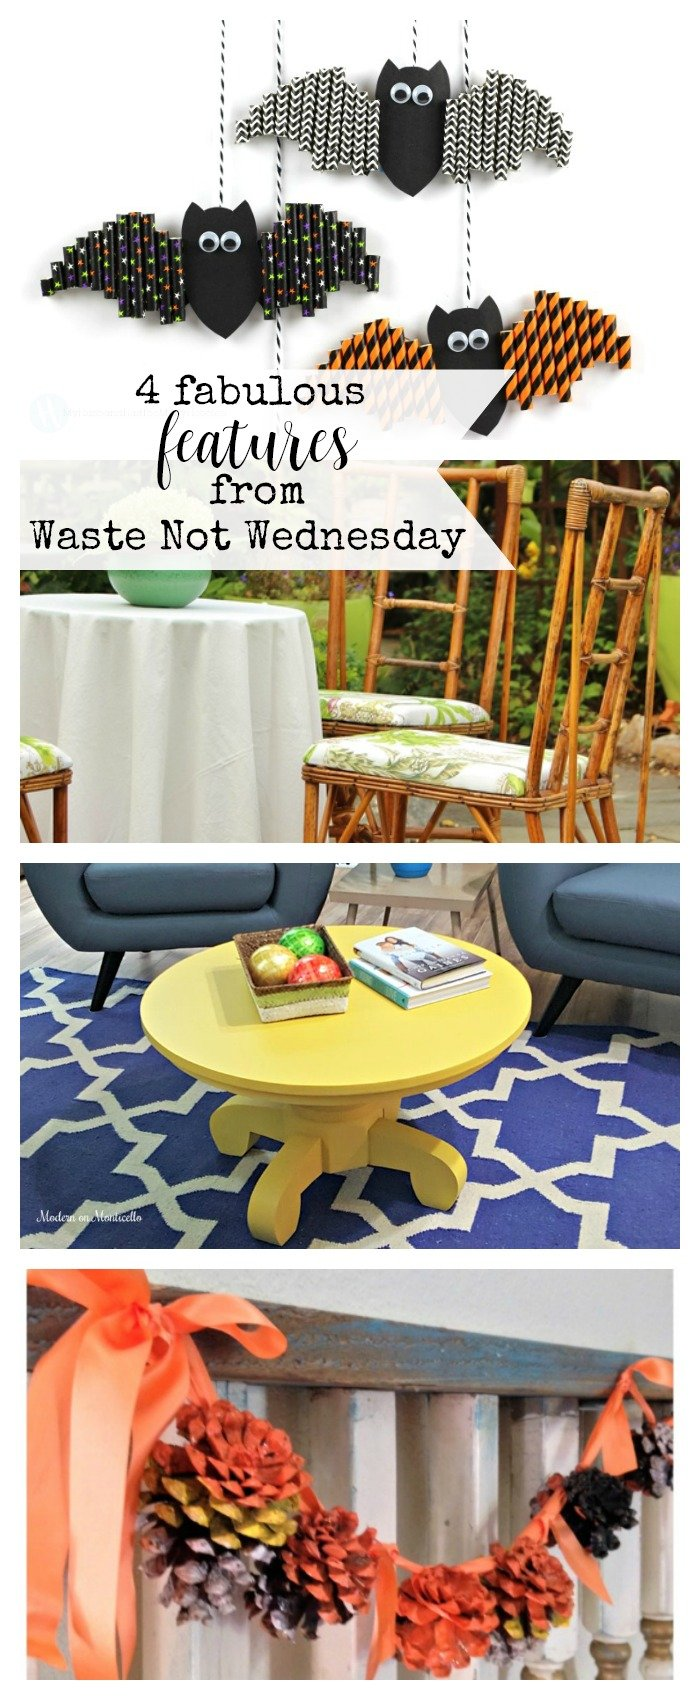 Features from our fun Waste Not Wednesday-69 DIY, Craft, Home Decor and Recipe party this week! Be sure to join us and share your DIY, Craft, Home Decor and favourite recipes! | www.raggedy-bits.com | www.mythriftyhouse.com | www.salvagesisterandmister.com |